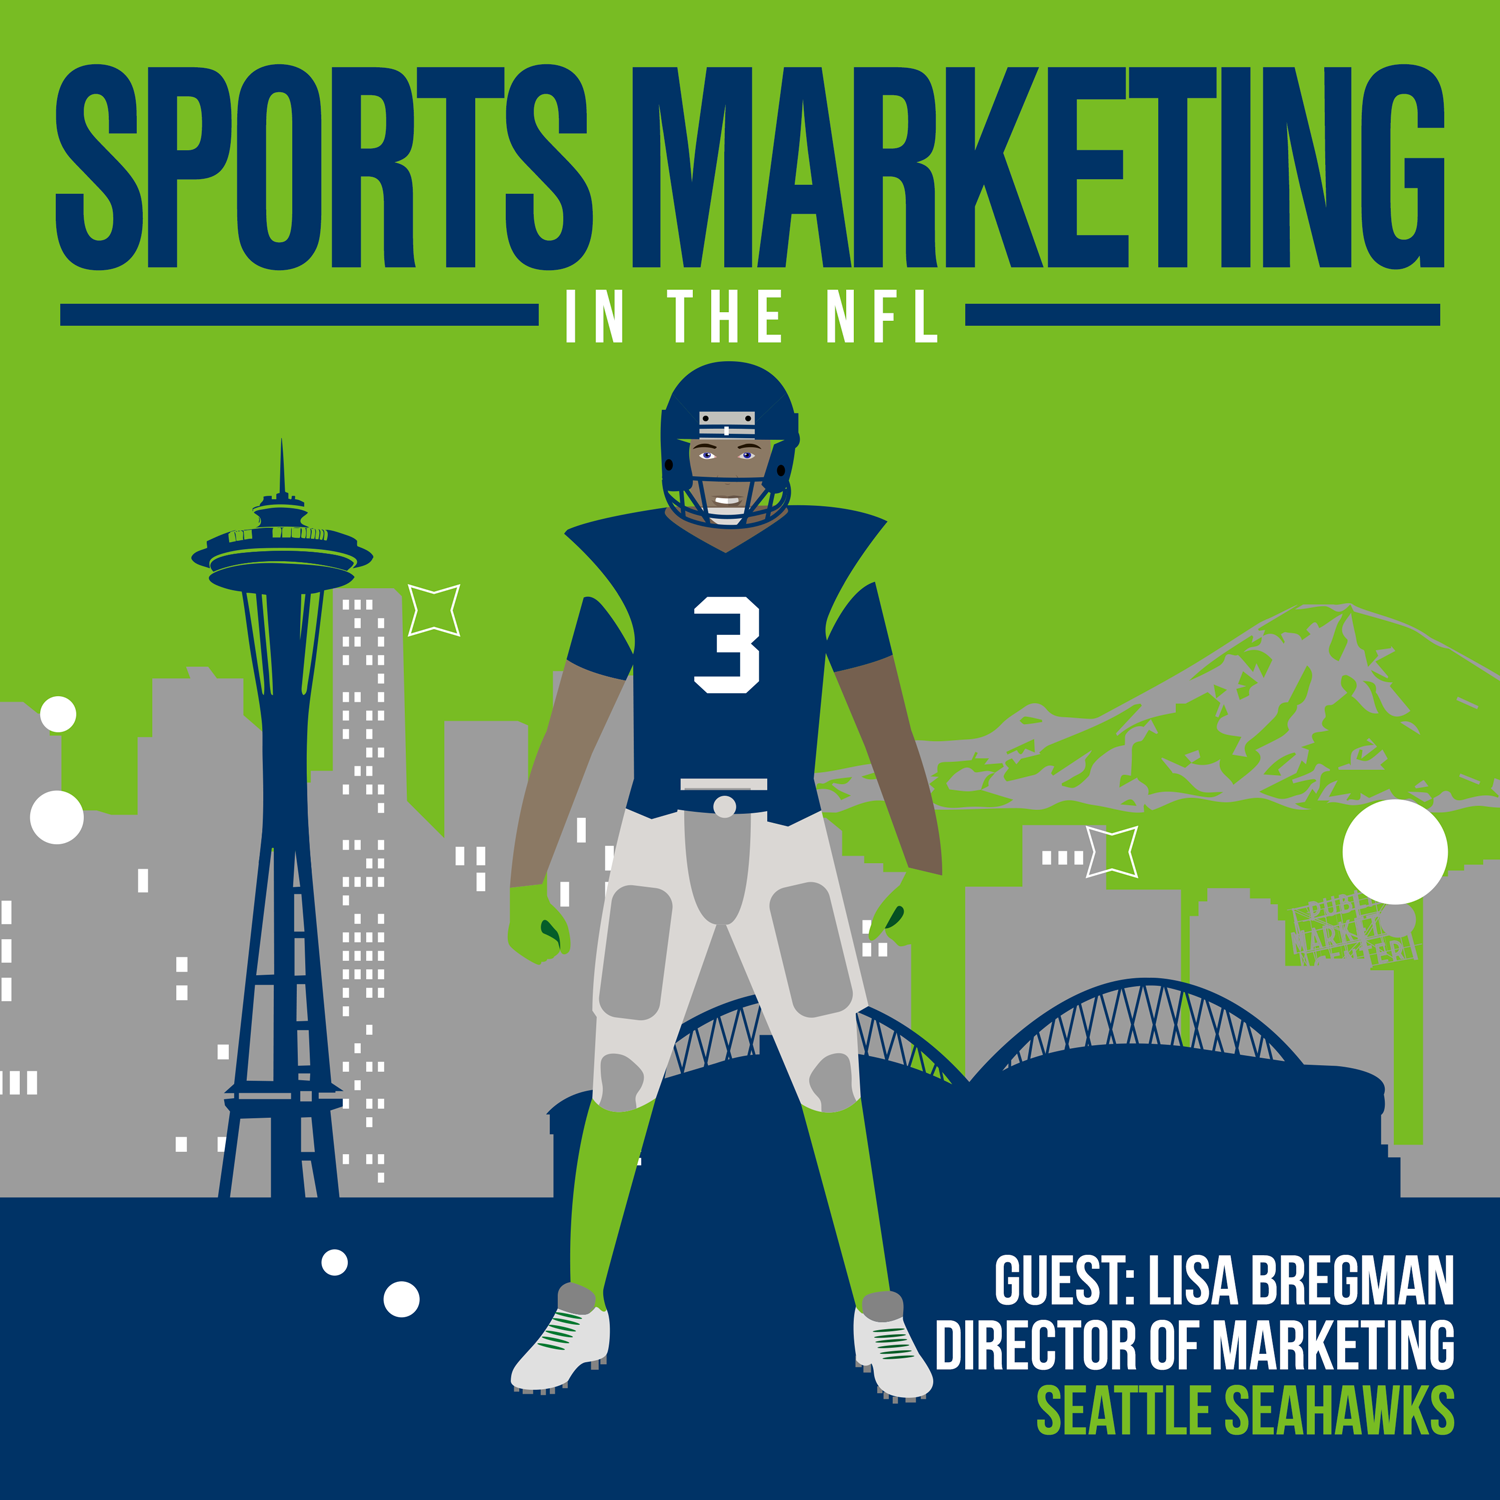 sports marketing jobs in the nfl